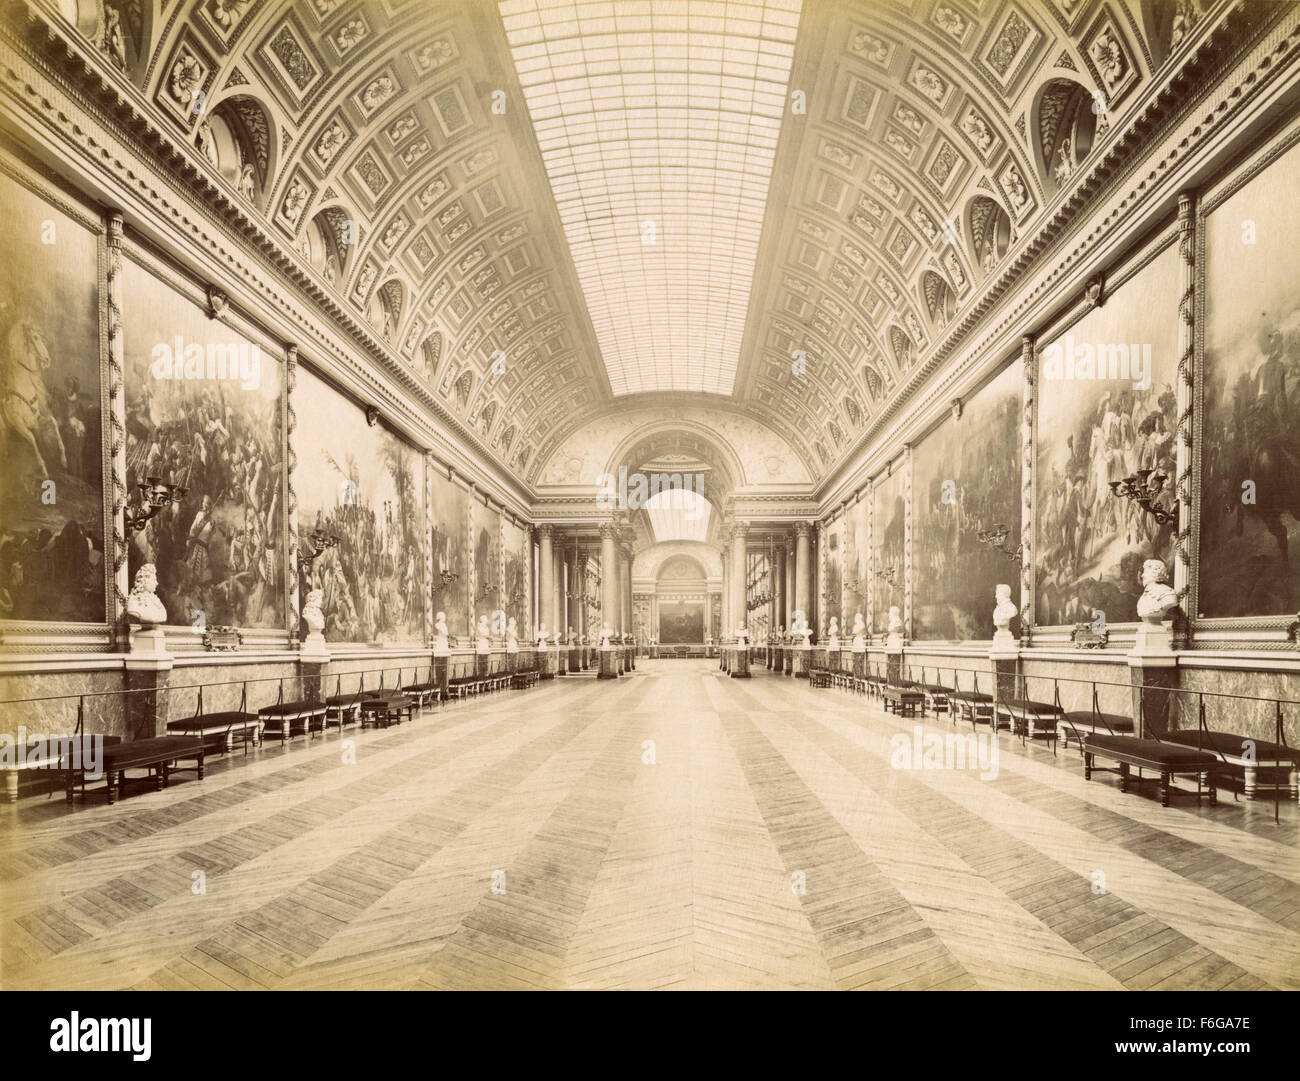 Gallery of Battles, Versailles, France - Stock Image